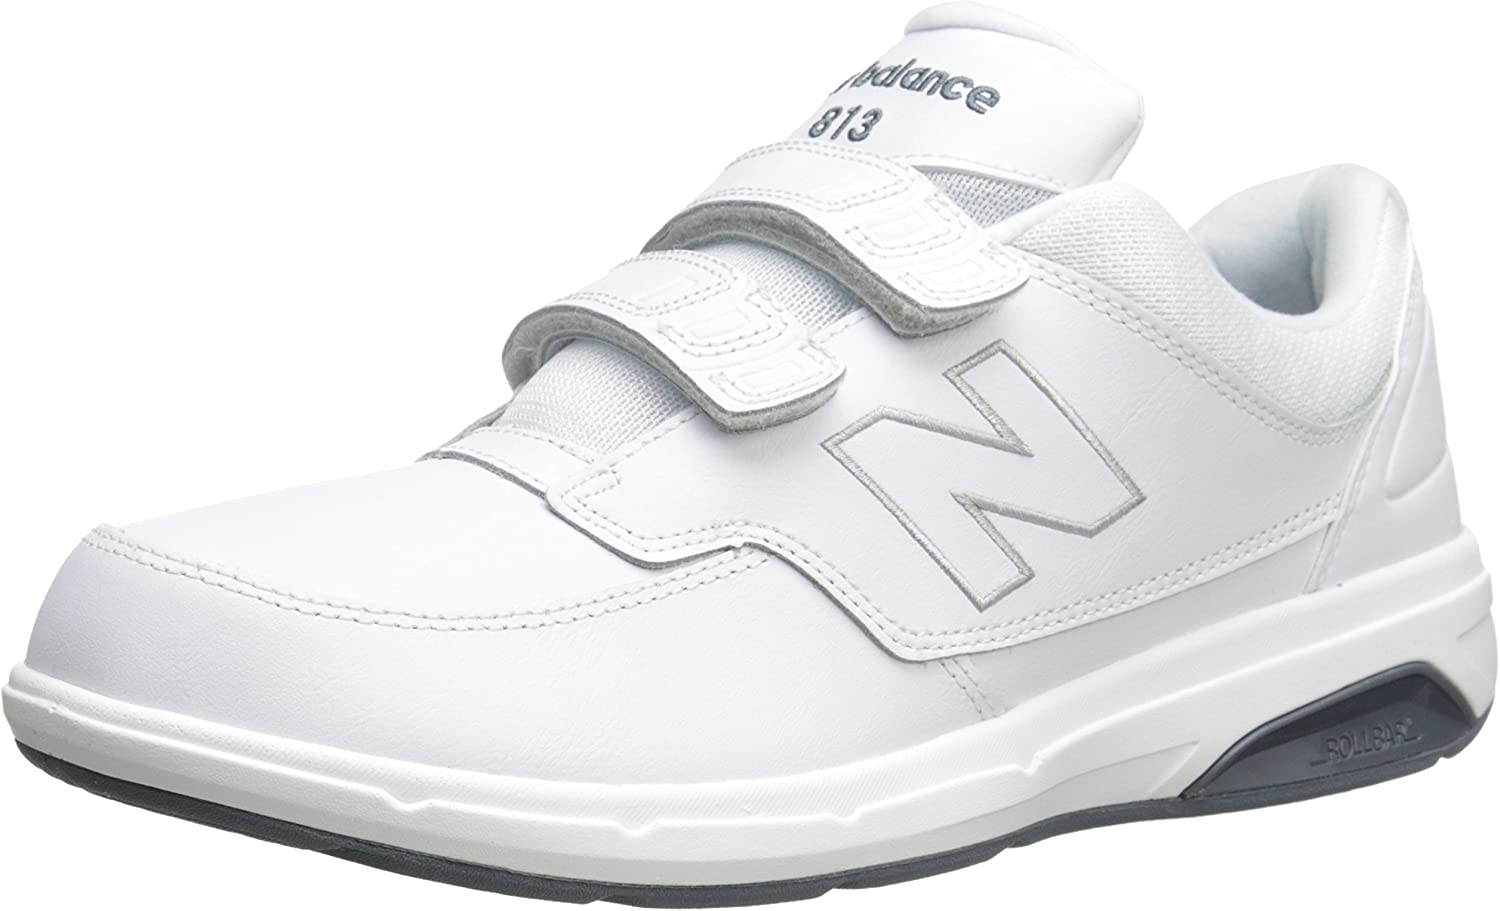 New Balance Men's MW813V1 Hook and Loop Walking shoes, White, 14 4E US